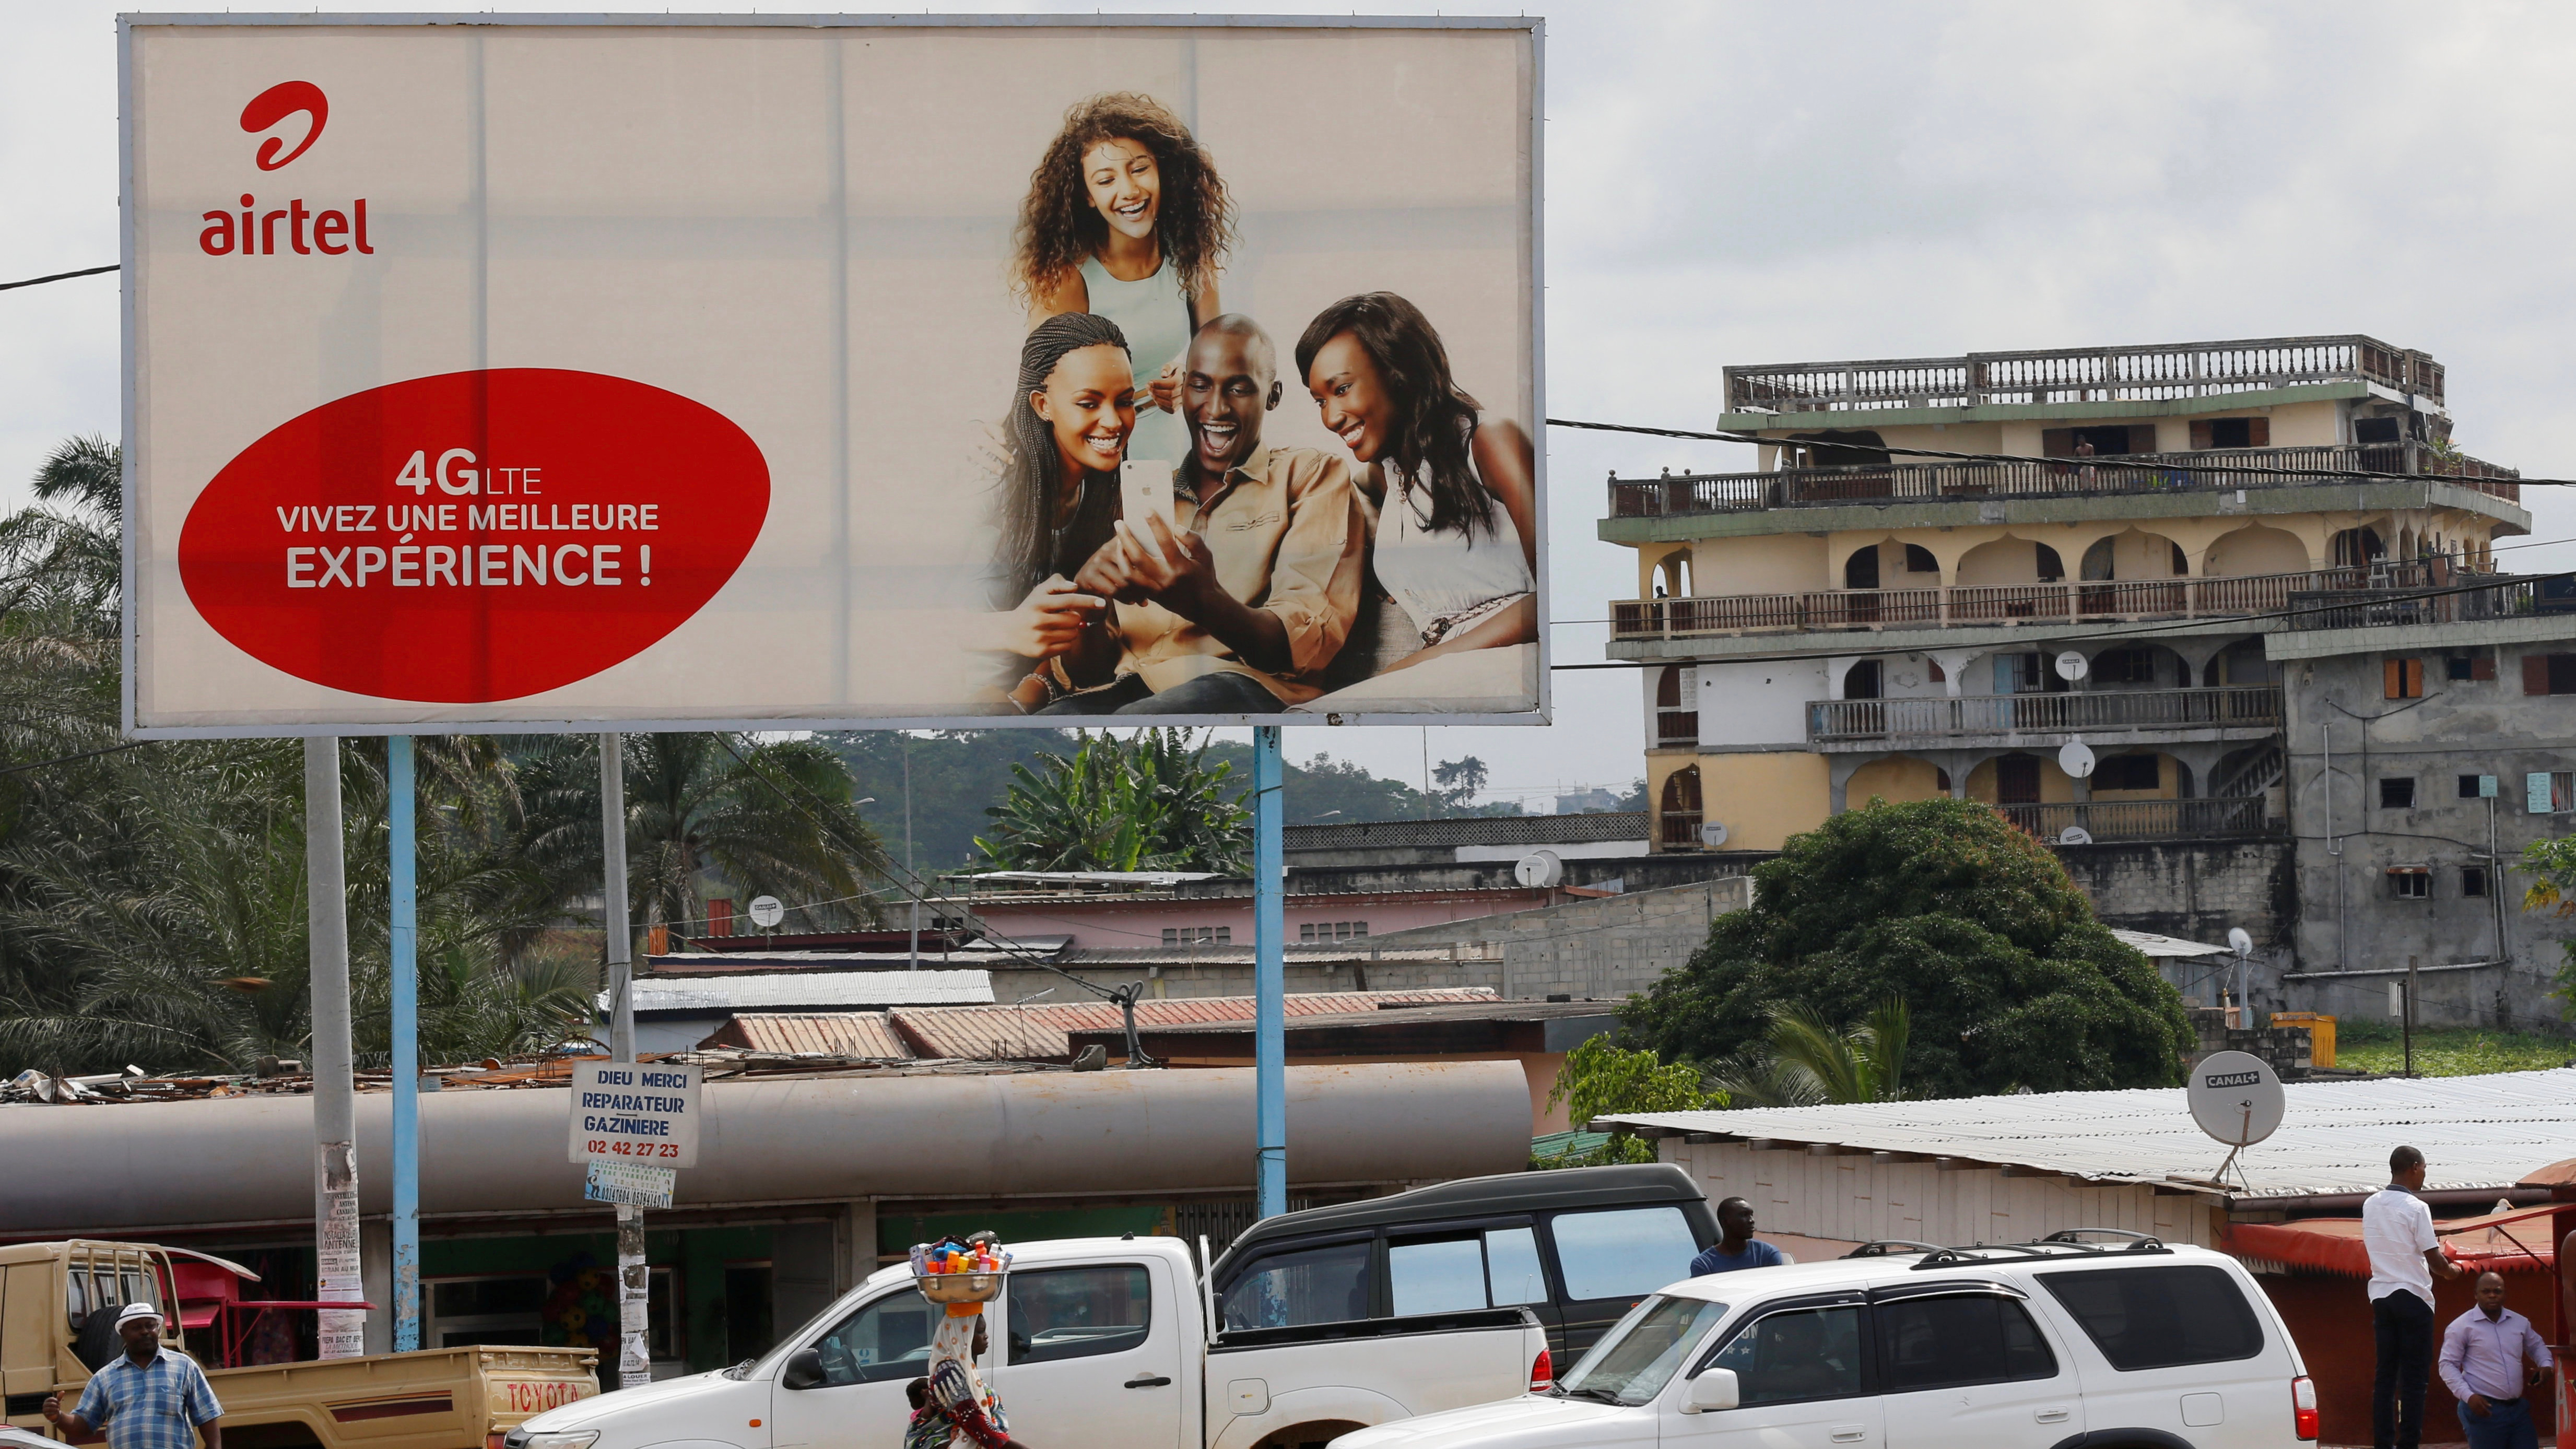 Airtel Africa: Airtel denies leaving Africa, but will scale back to reduce debt